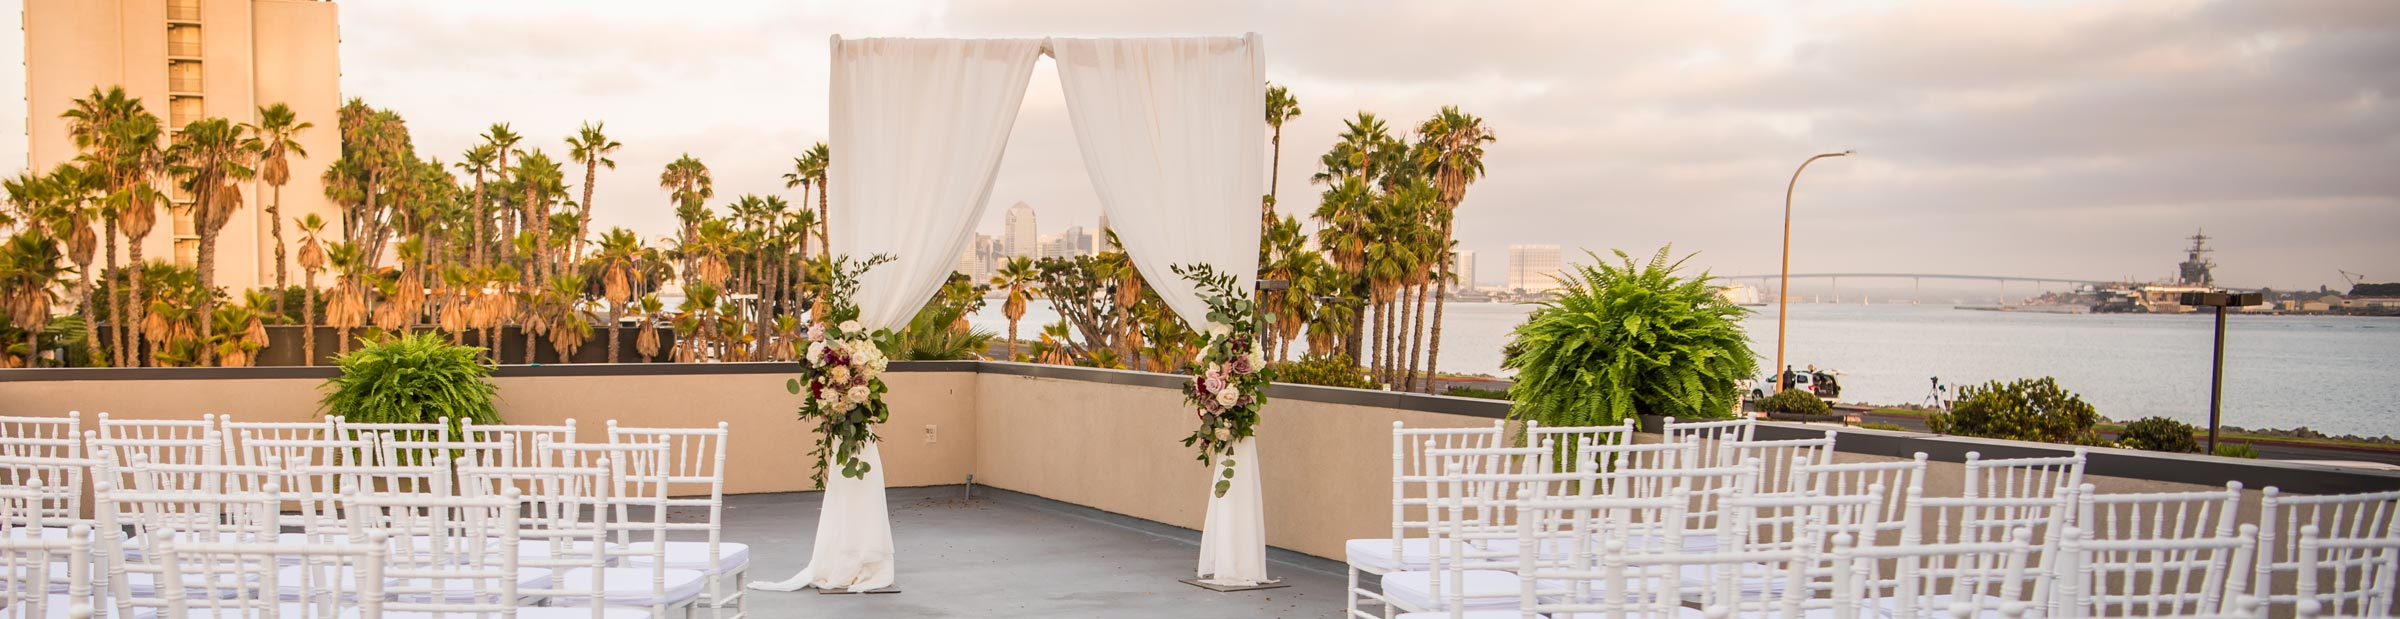 Best Wedding Venues In San Diego At Affordable Prices Harbor View Loft